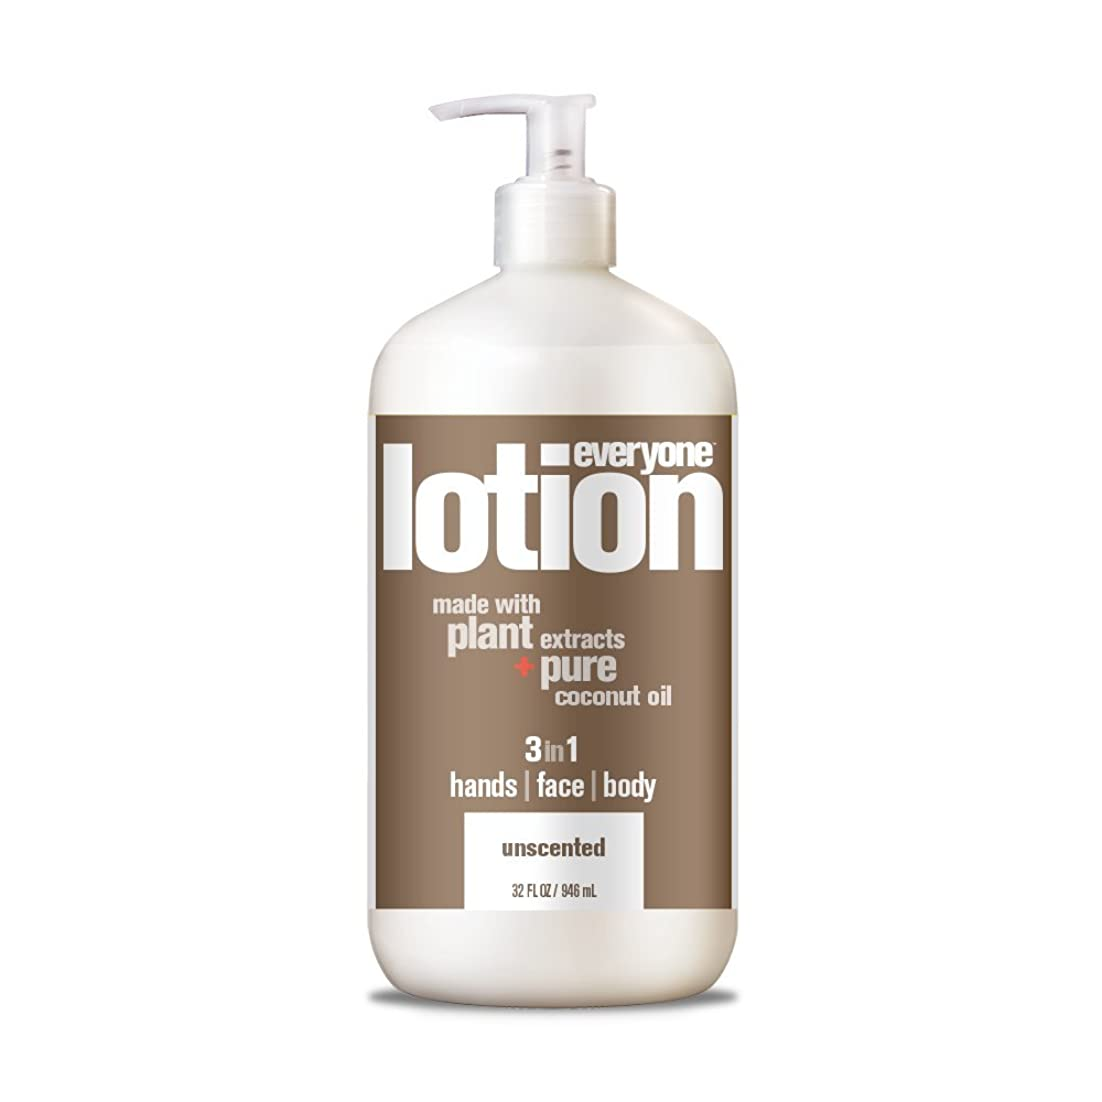 シンポジウム栄光砦海外直送品EO Products Everyone Lotion, Unscented 32 fl oz